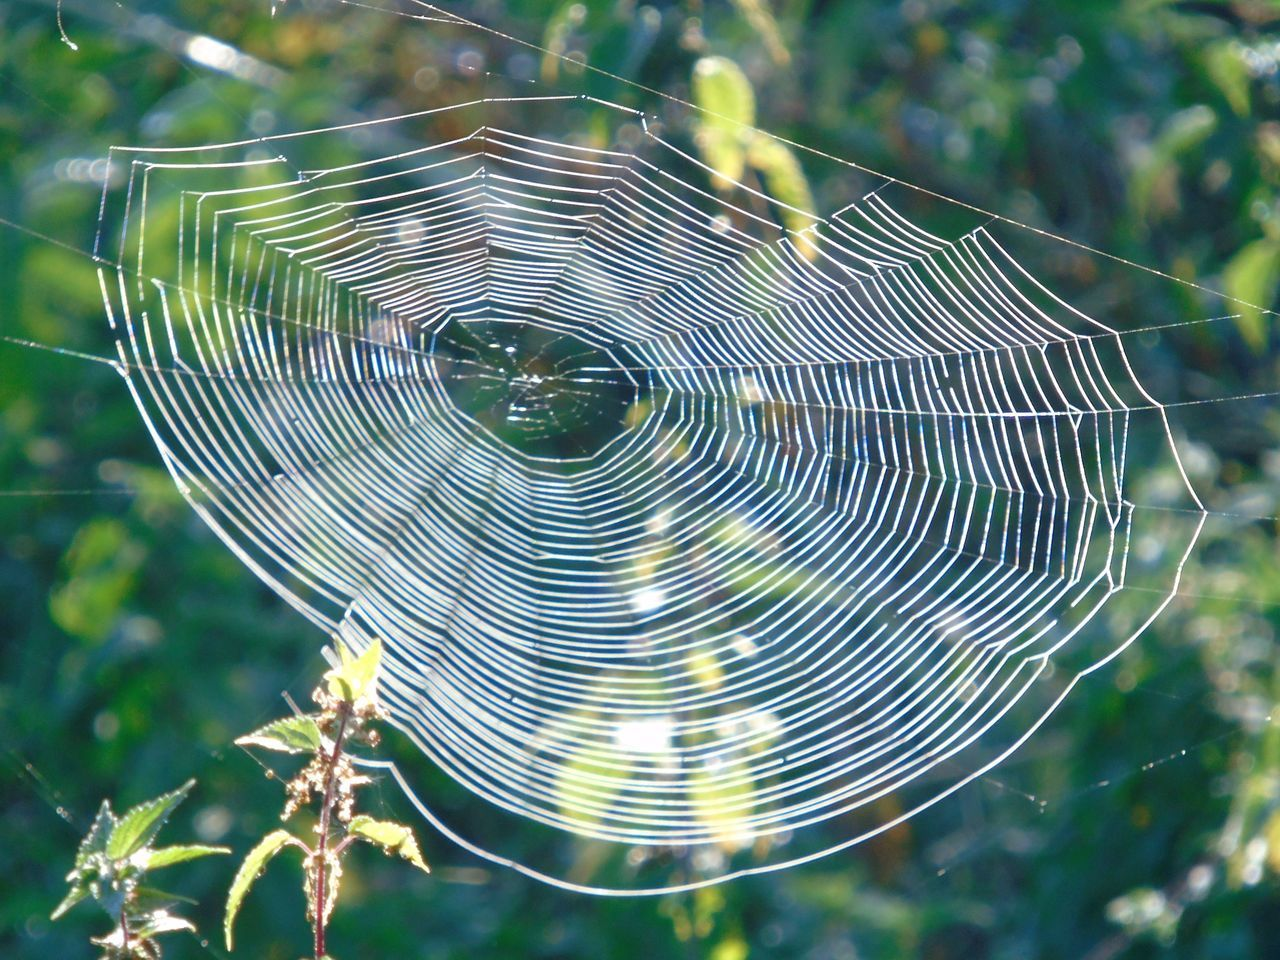 Animal Markings Animal Themes Beauty In Nature Close-up Cob Web Complexity Day Focus On Foreground Fragility Green Color Growth Intricacy Natural Pattern Nature No People Outdoors Pattern Plant Spider Web Spiderweb Tranquility Trapped Web